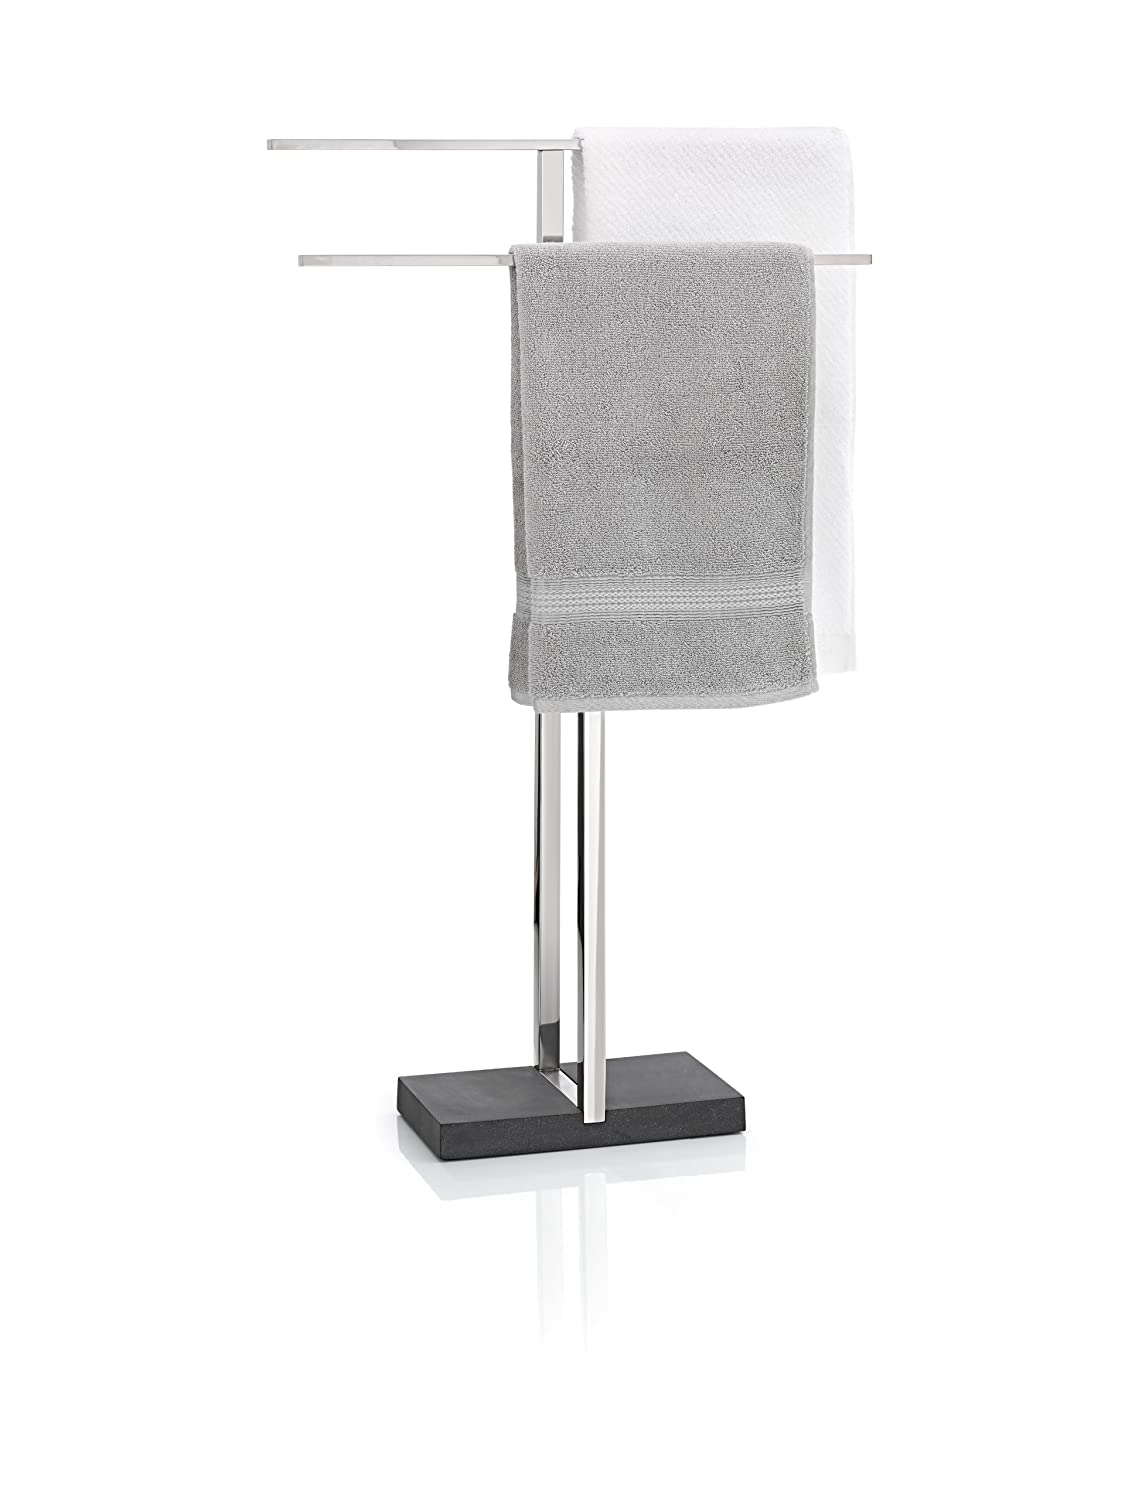 Blomus Floor Standing Towel Rack Stand, Polished Stainless Steel 68664